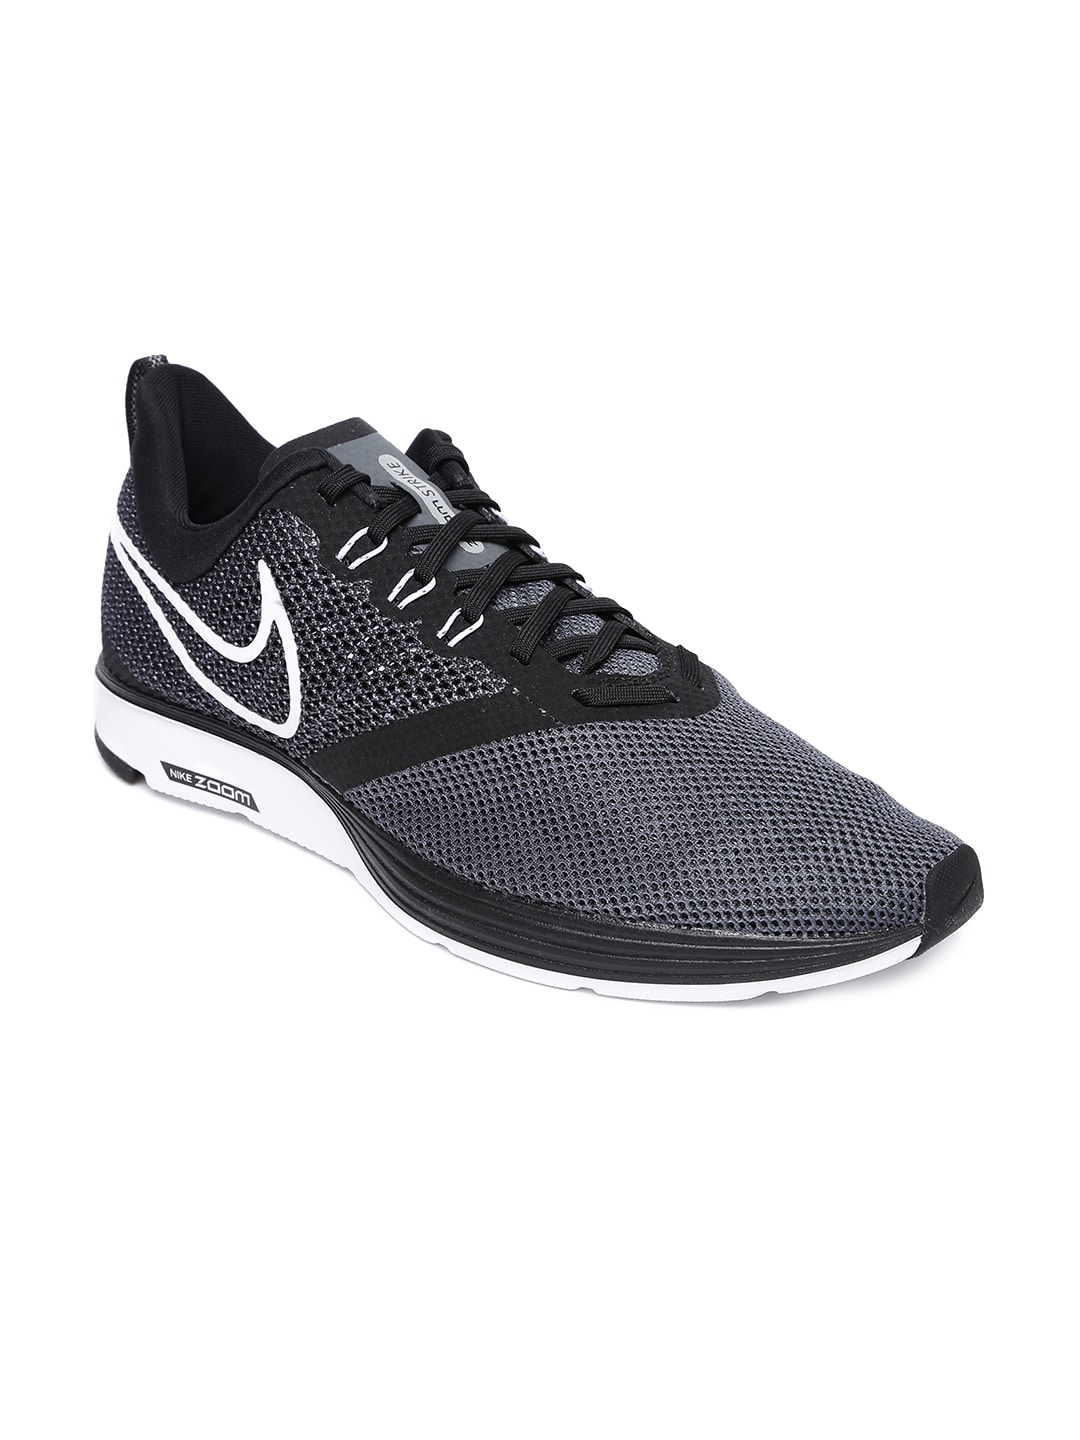 7e7d176efc5a Nike Black Shoes - Buy Nike Black Shoes Online in India